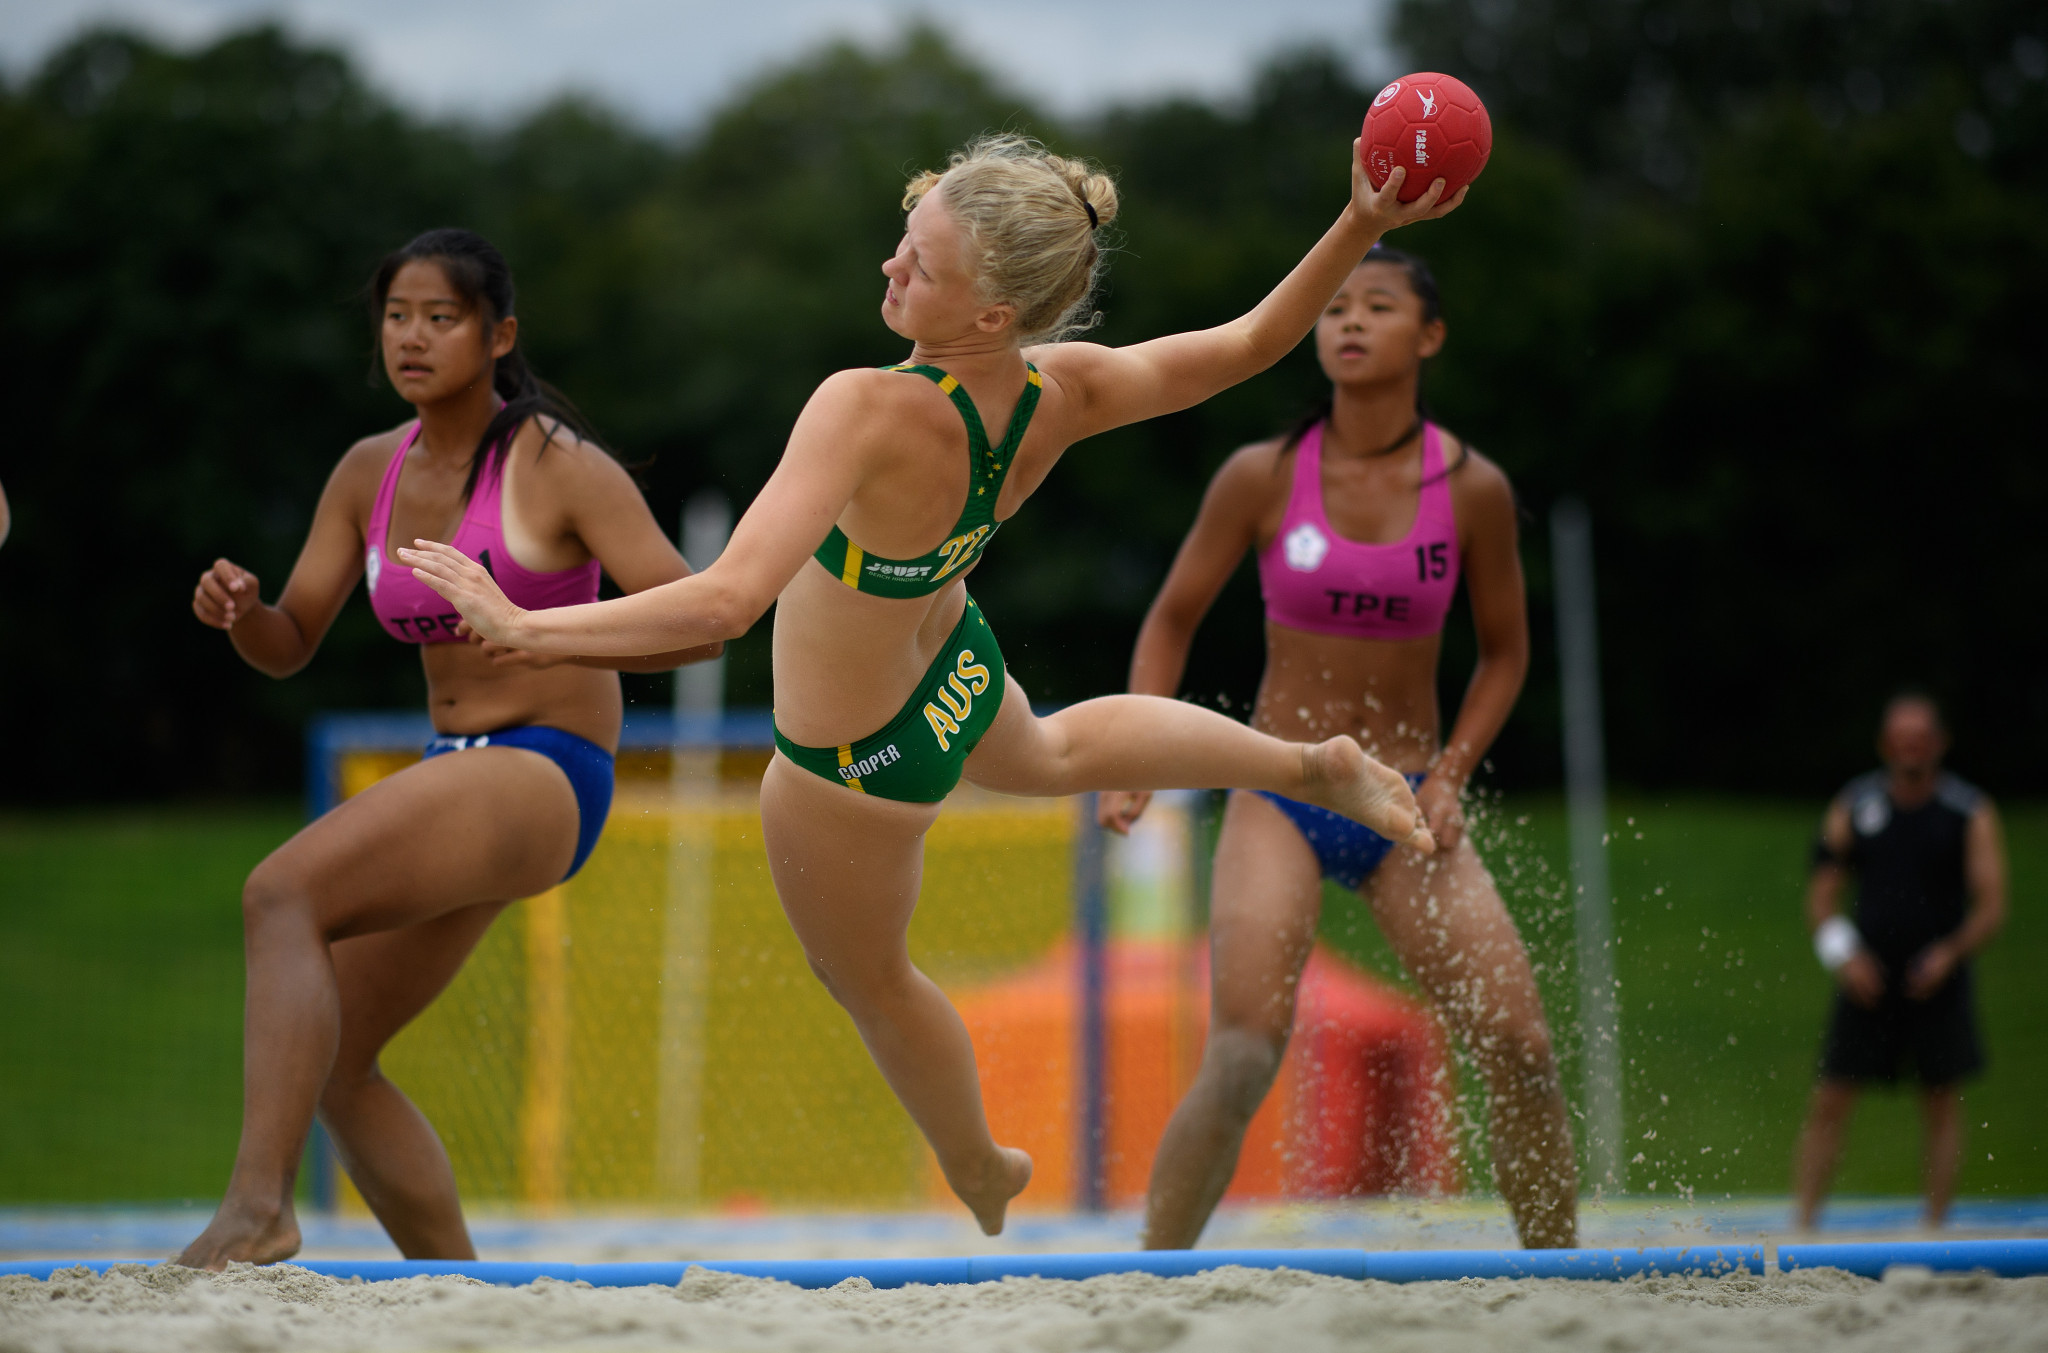 Buenos Aires 2018 beach handball draws made